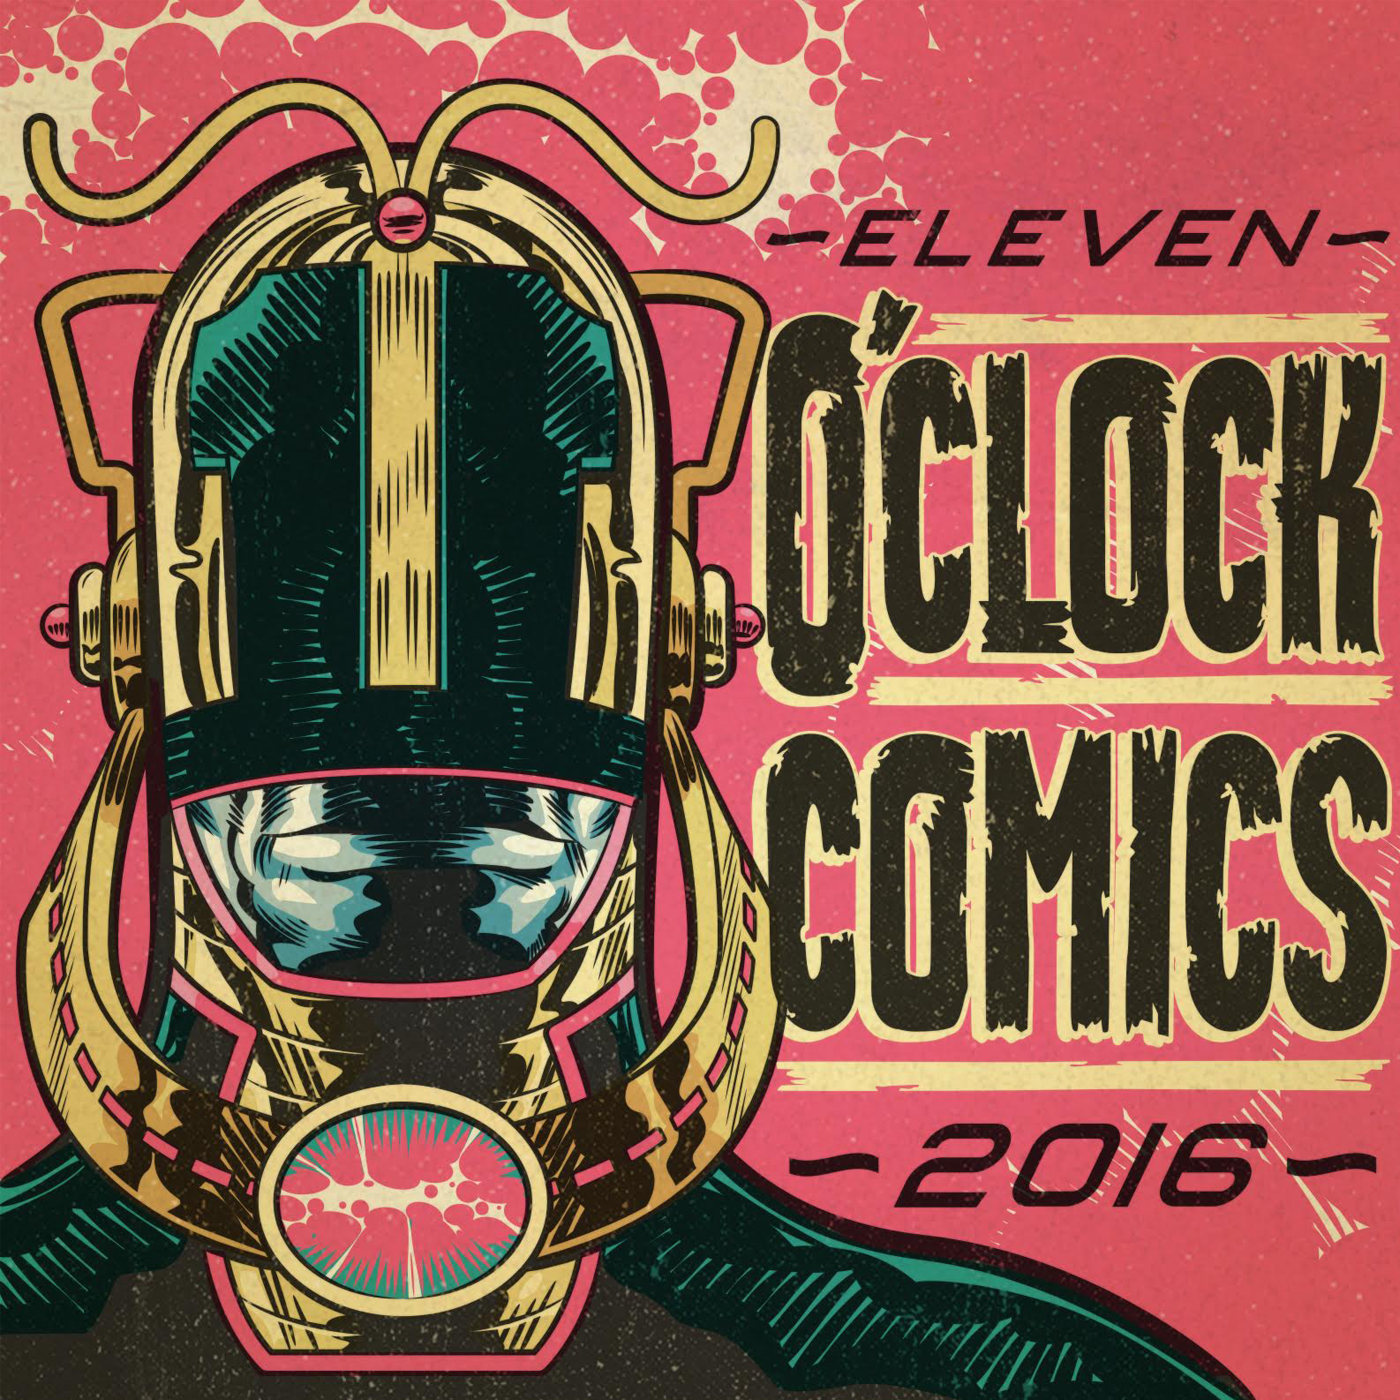 11 O'Clock Comics Episode 406